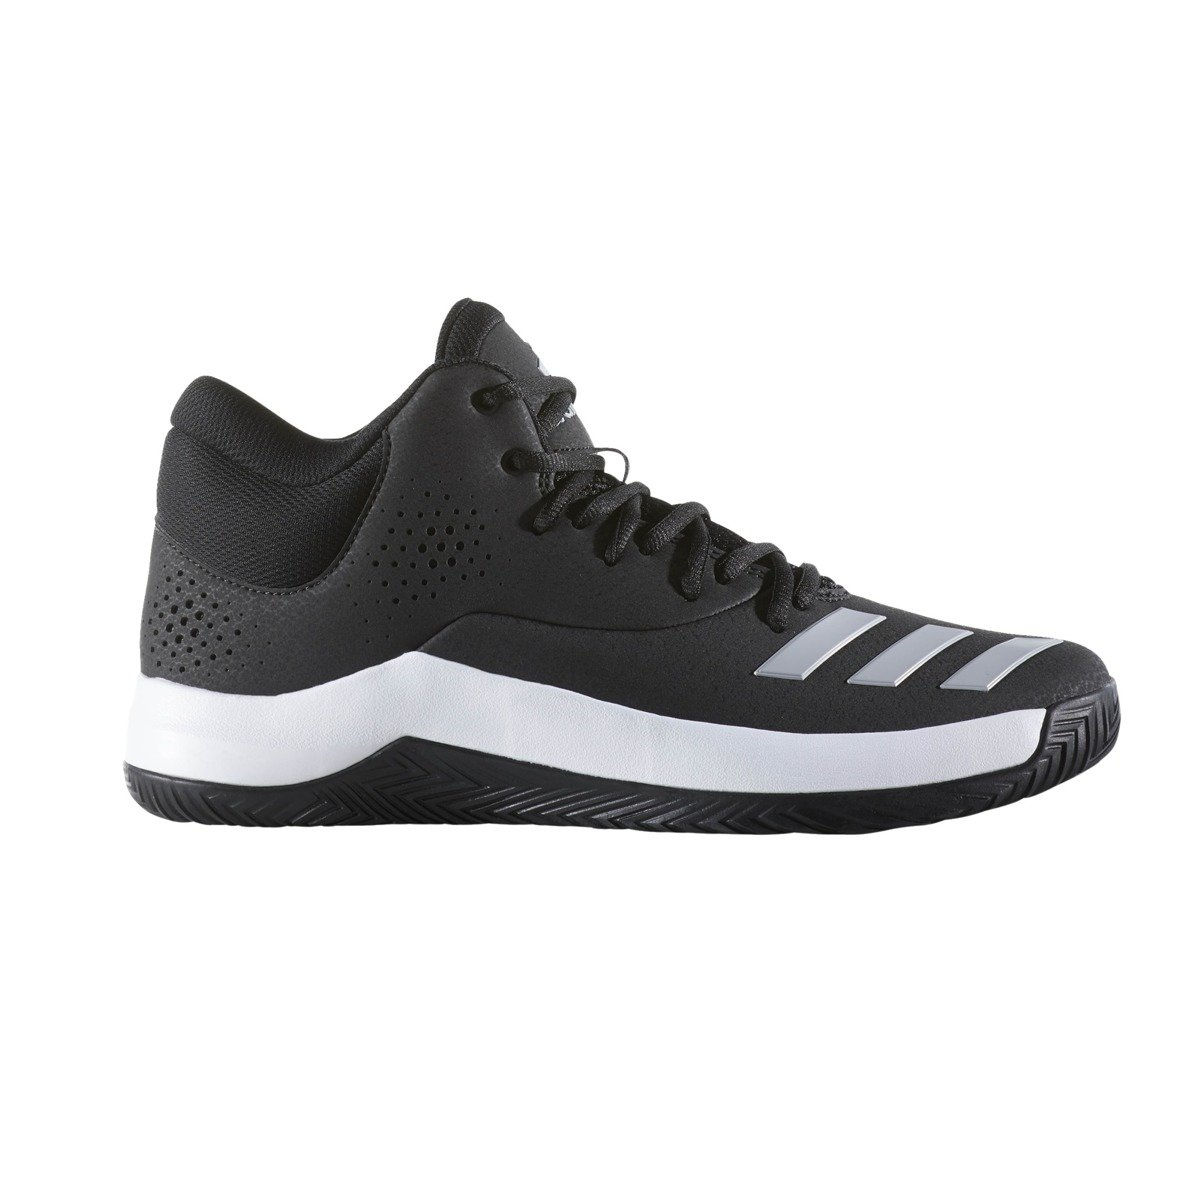 98600f81a666 Adidas Court Fury 2017 Shoes - BY4188